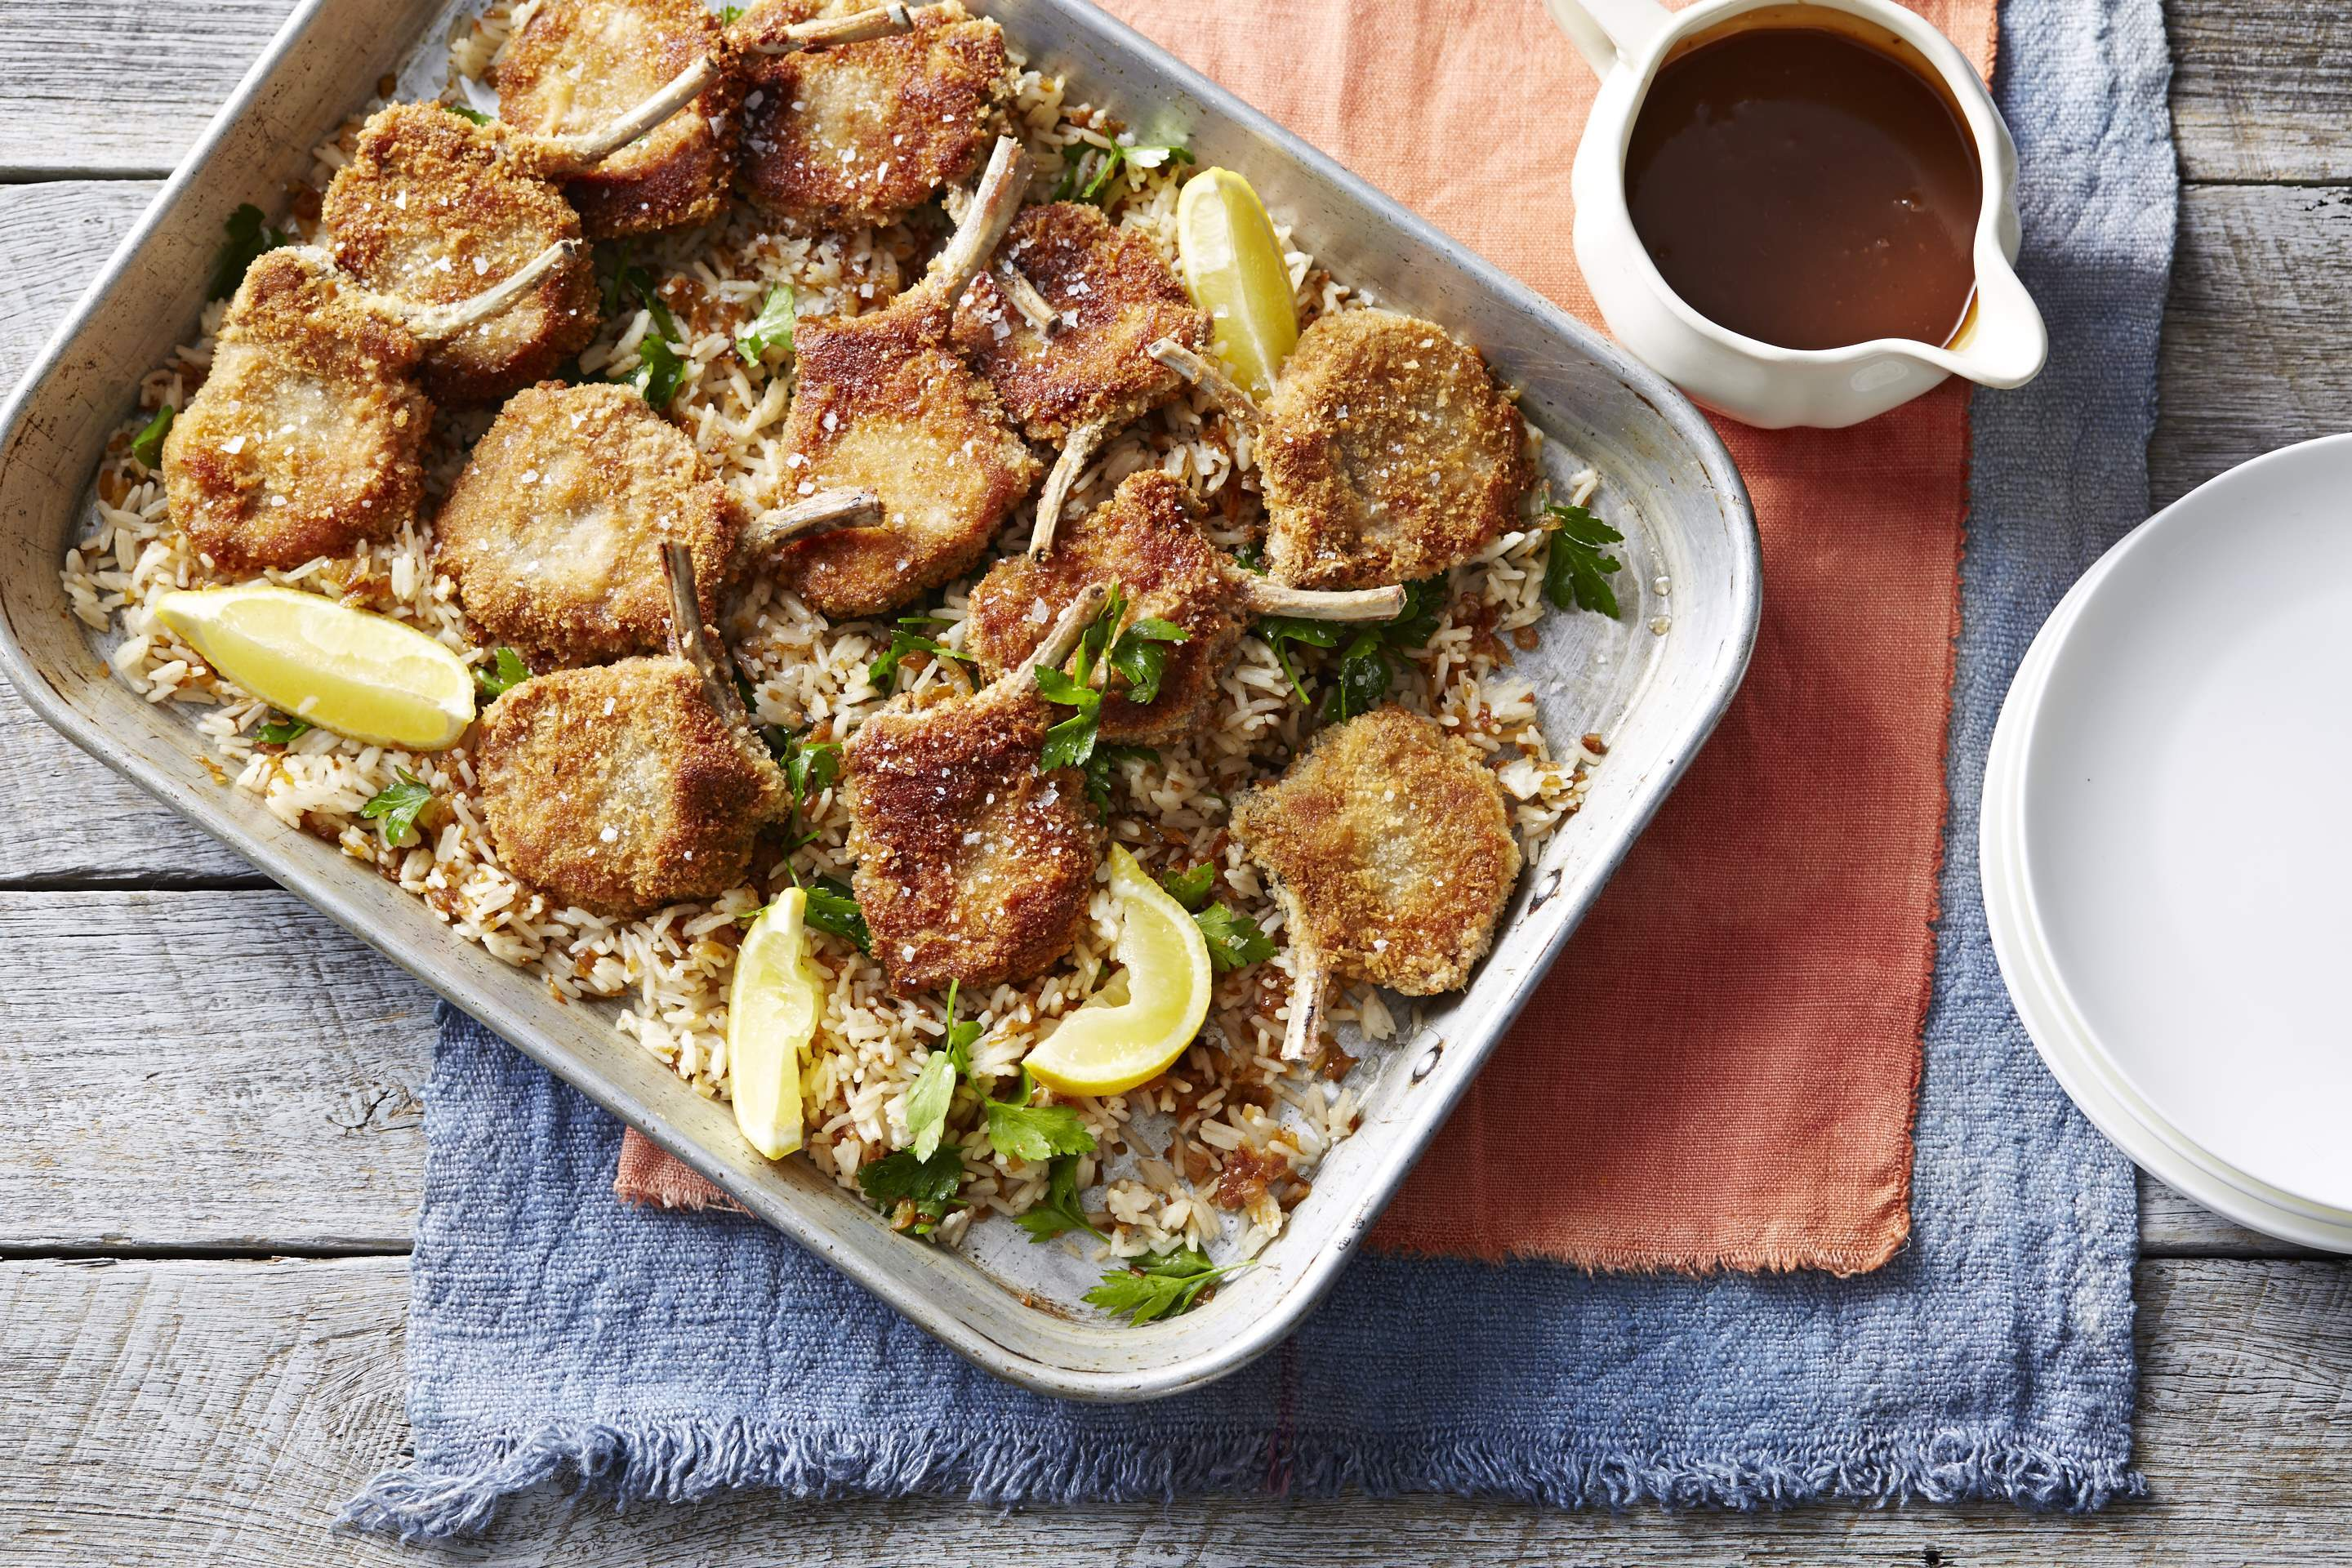 Crumbed lamb cutlets with sweet onion rice and gravy